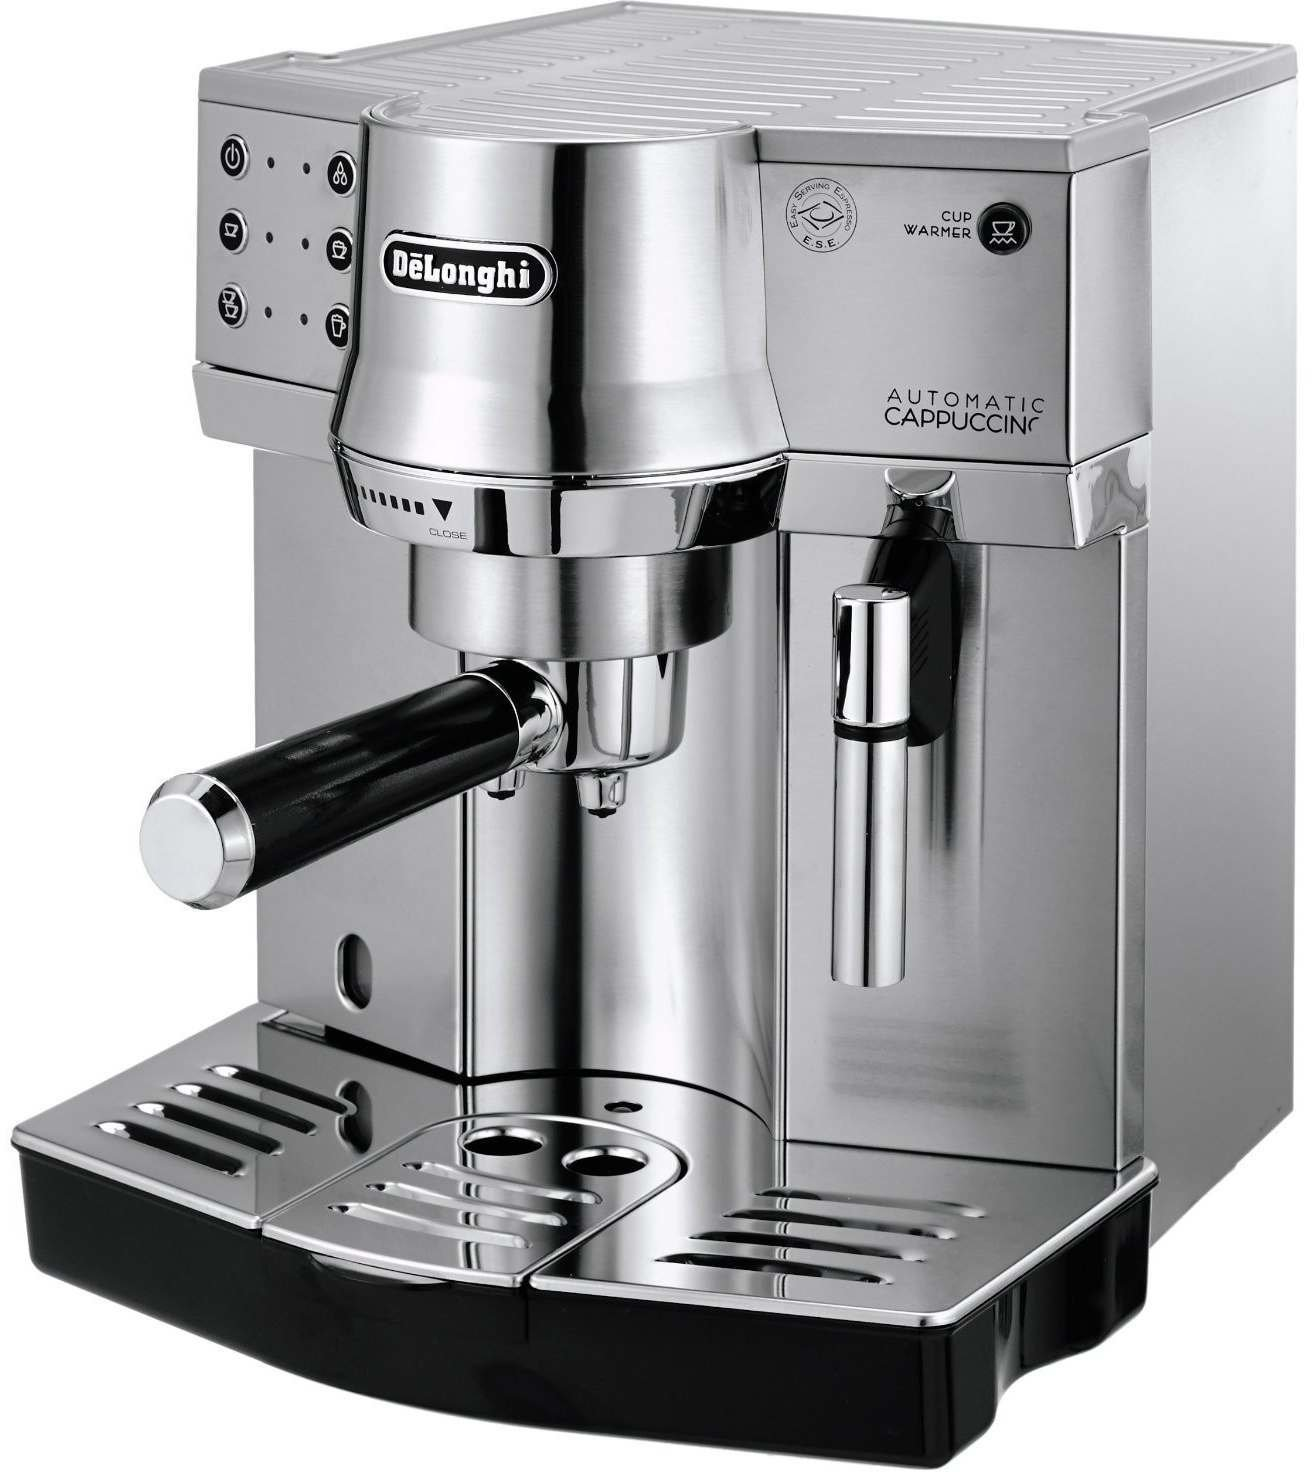 delonghi ec 860 m test espressomaschine. Black Bedroom Furniture Sets. Home Design Ideas